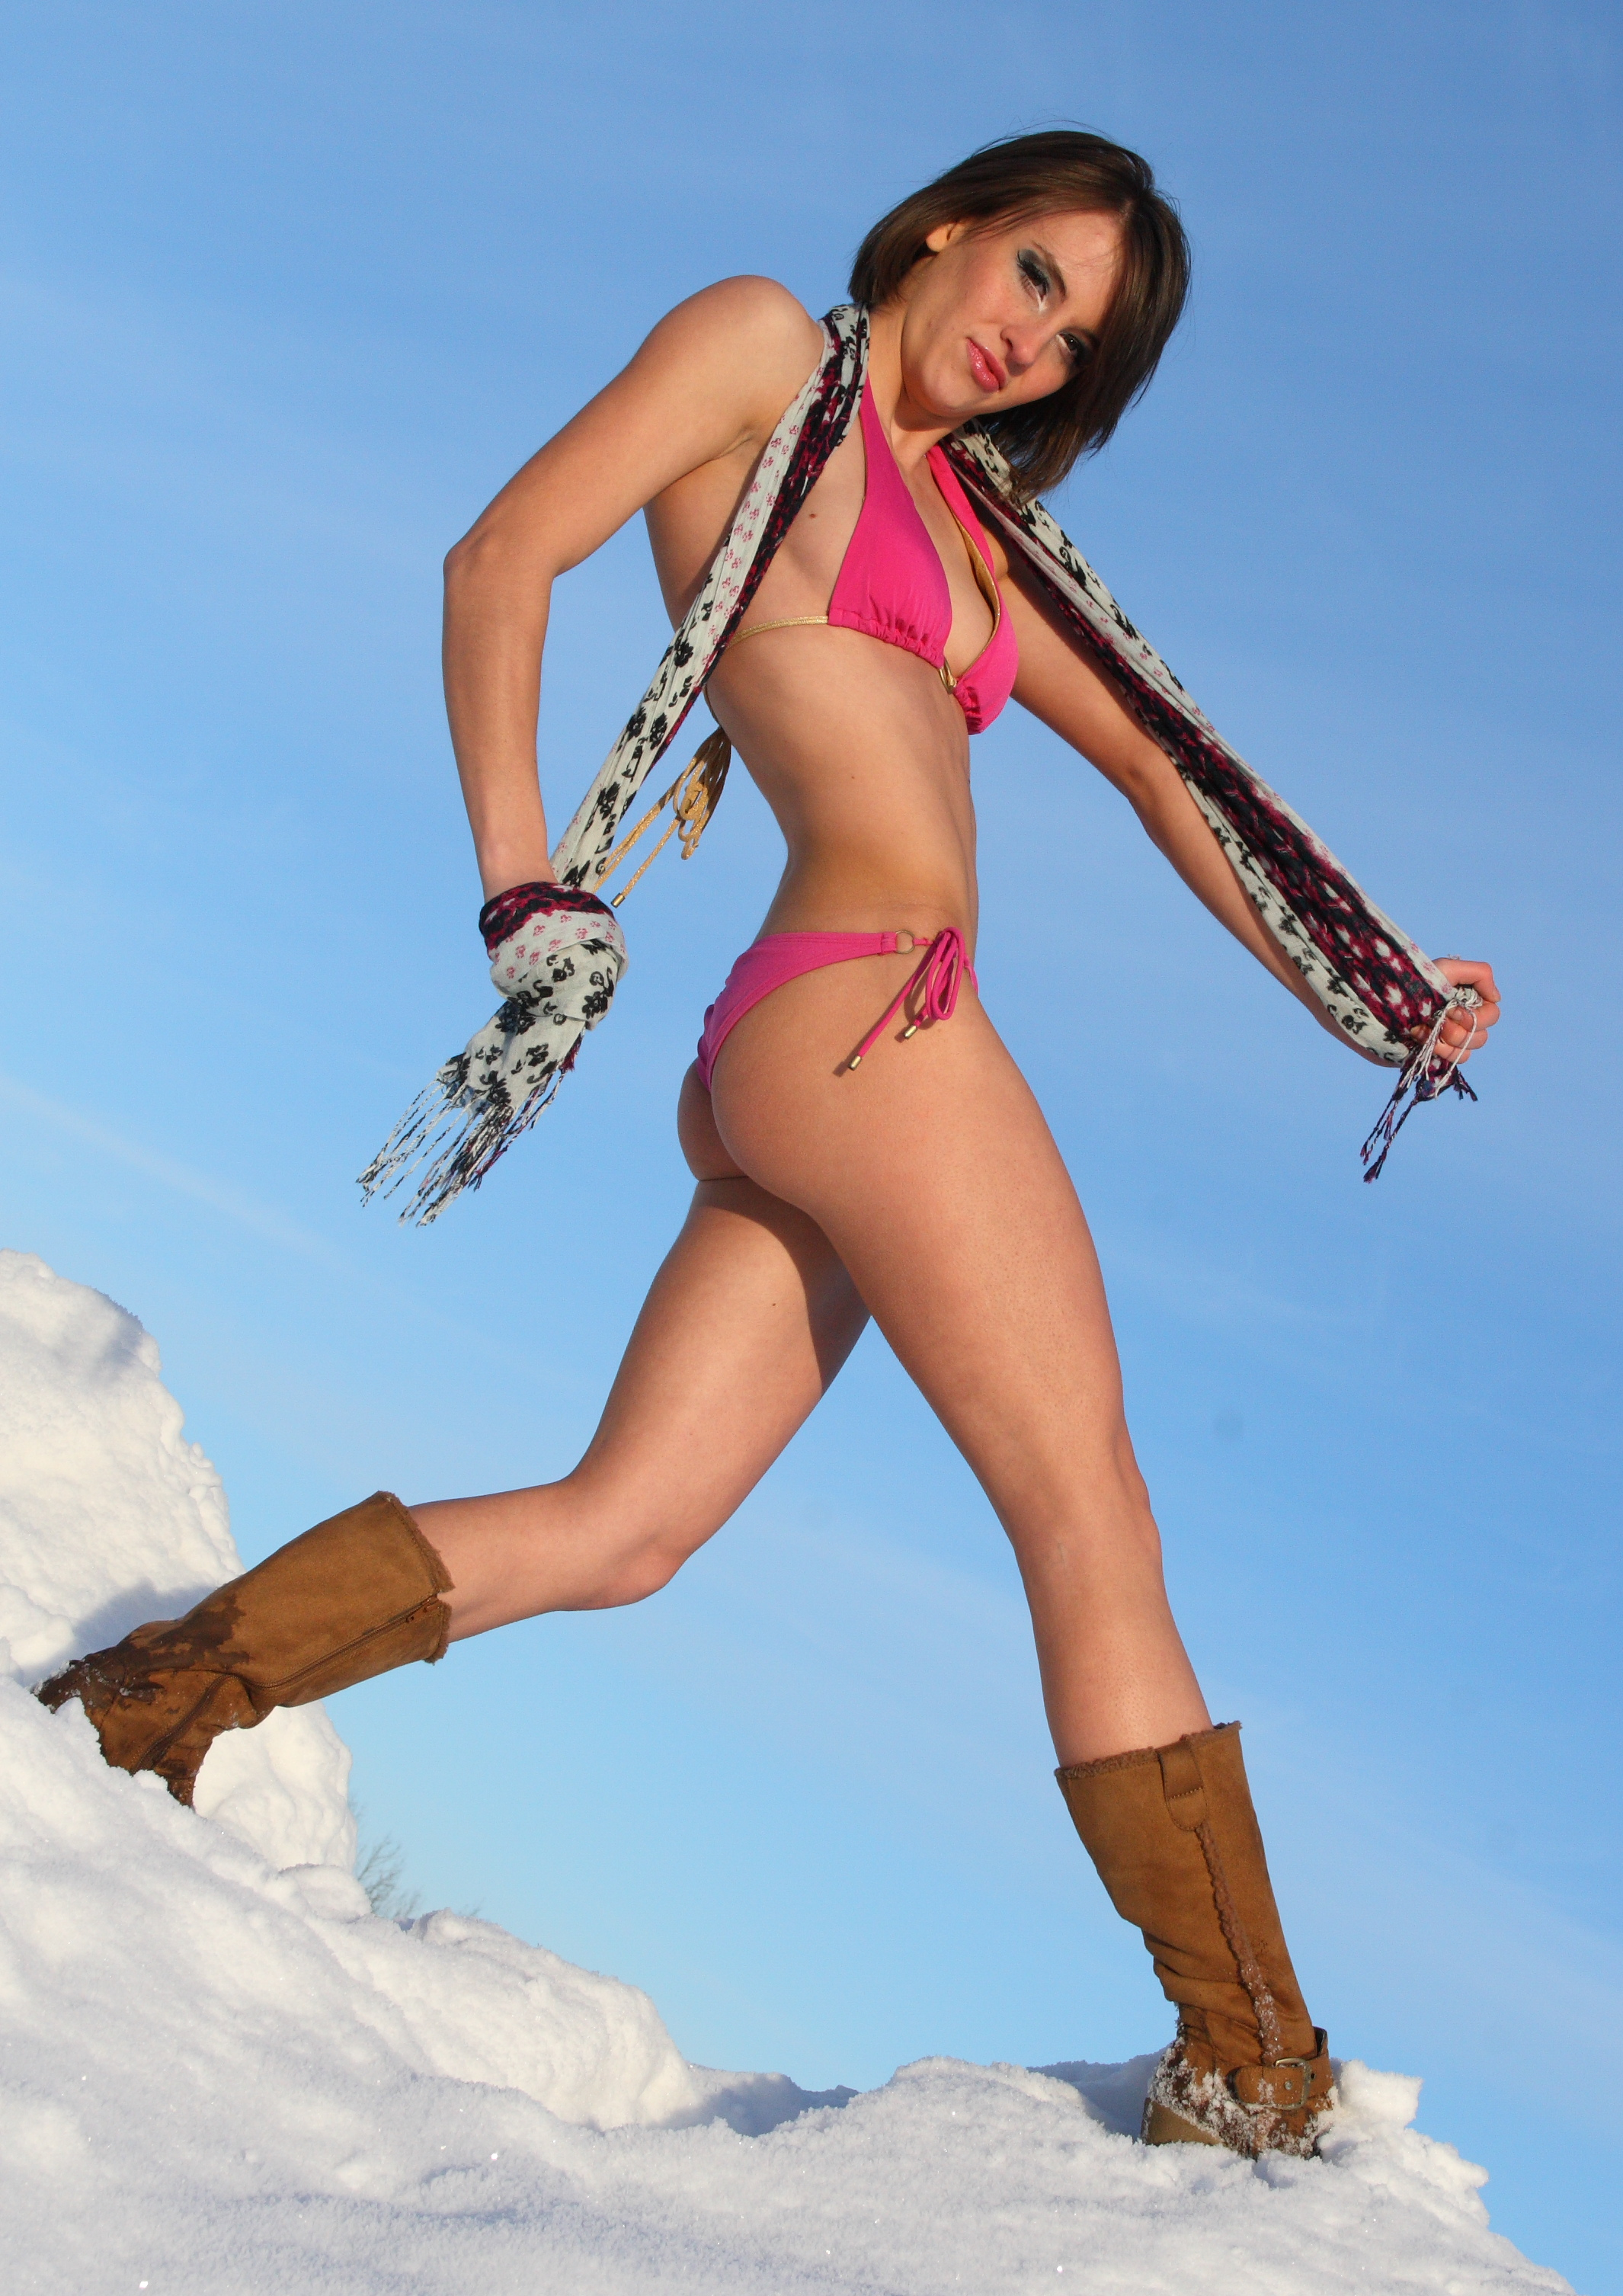 bikini in snow File:Bikini shoot in the snow (4896050637).jpg